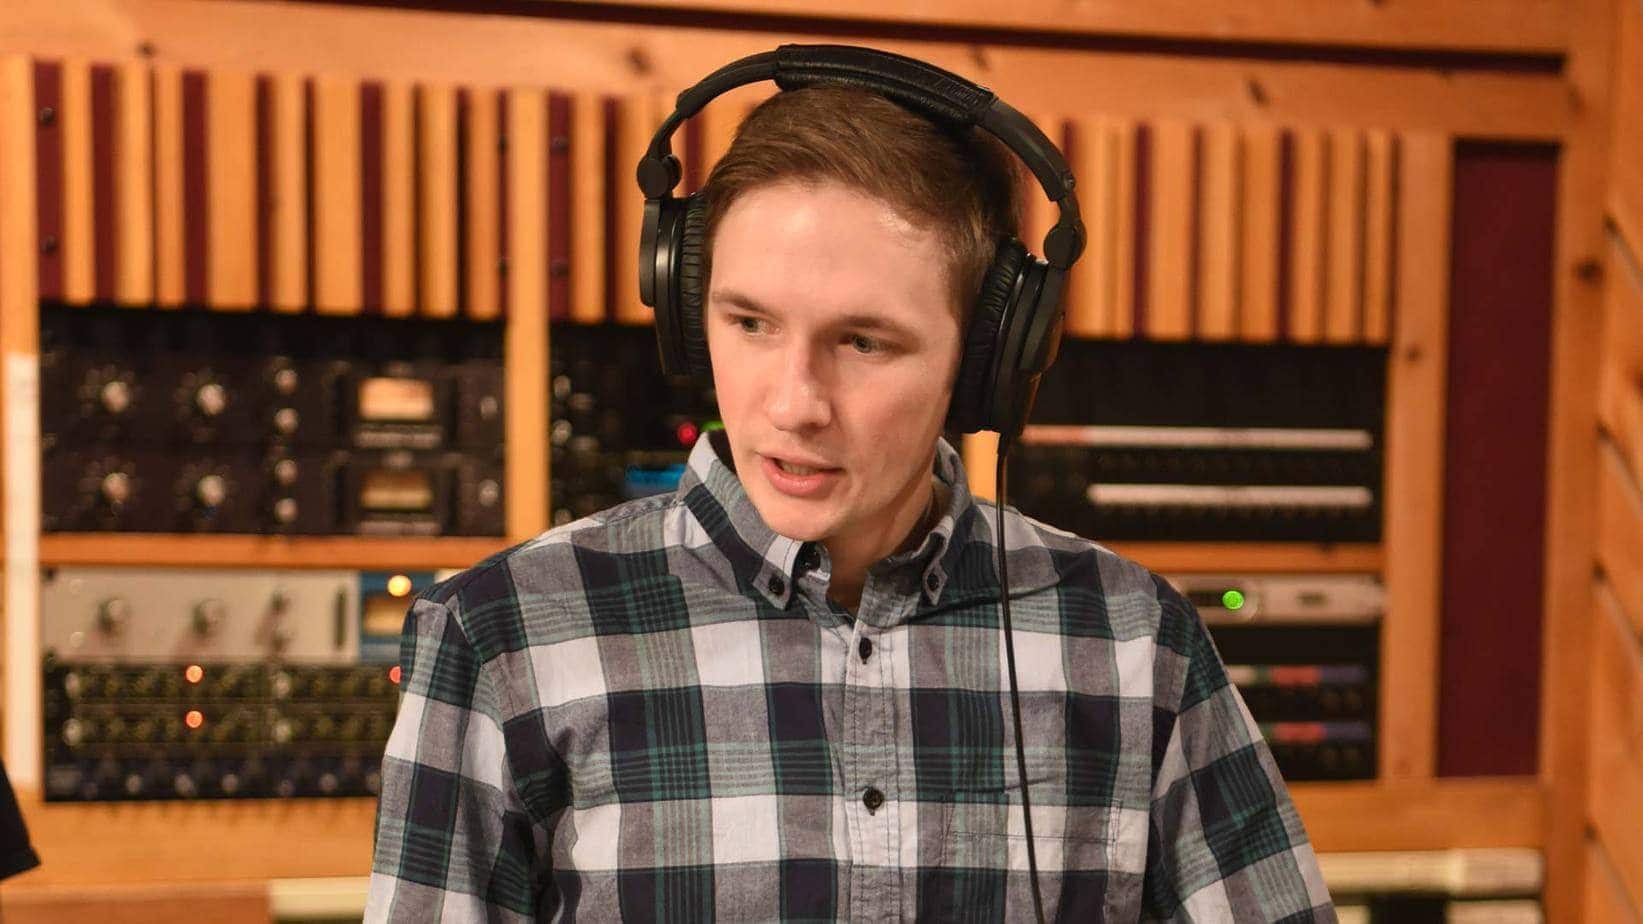 Koby Nelson: Mixing Engineer